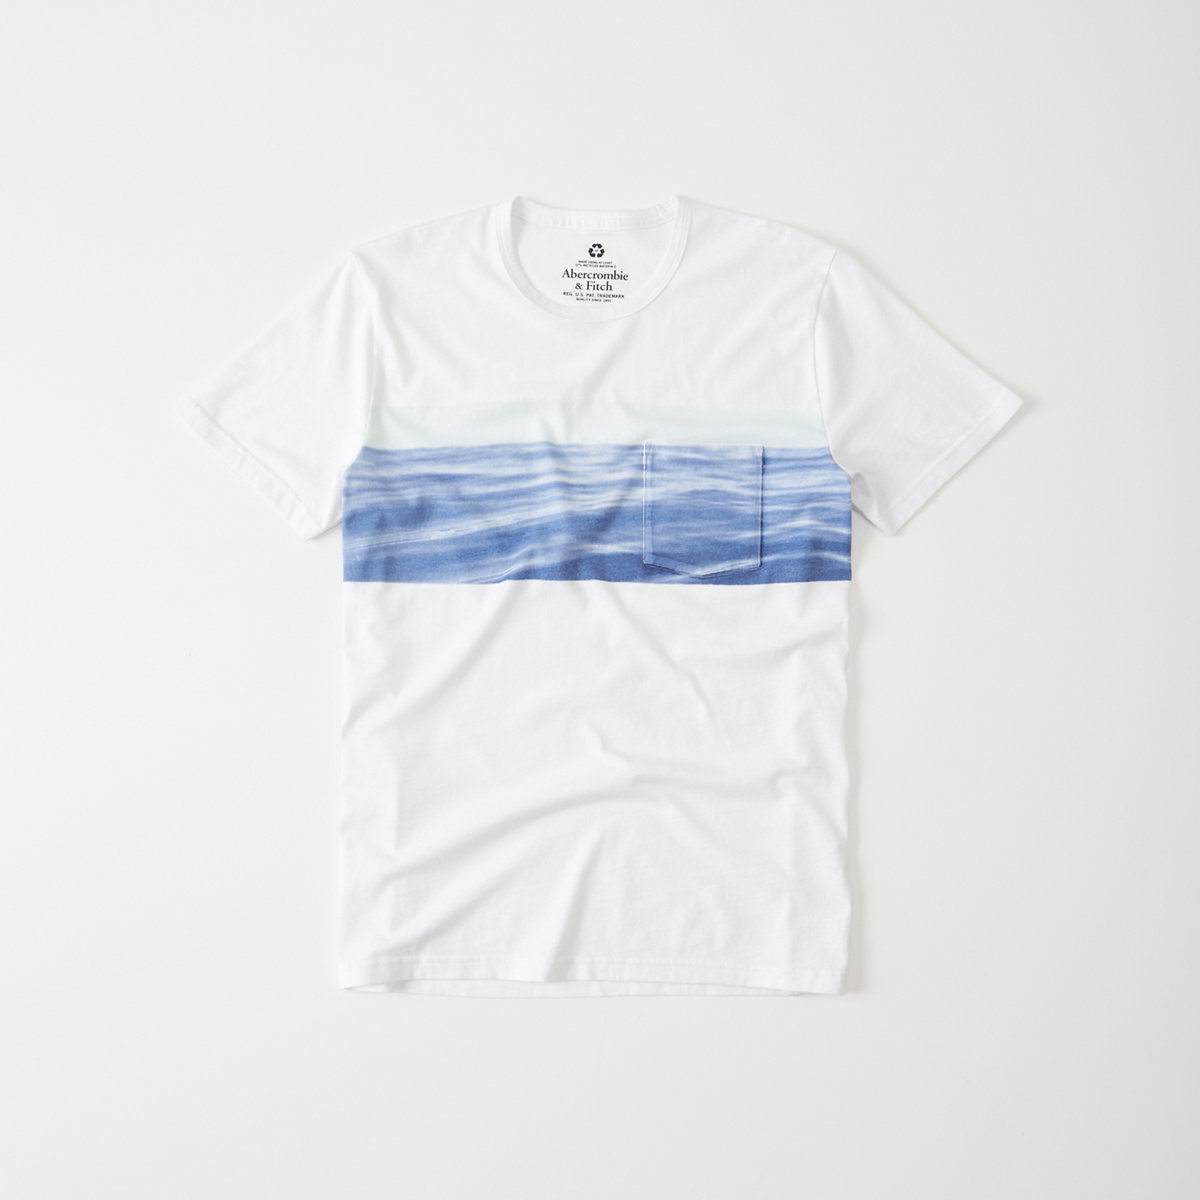 Recycled Fabric Graphic Tee